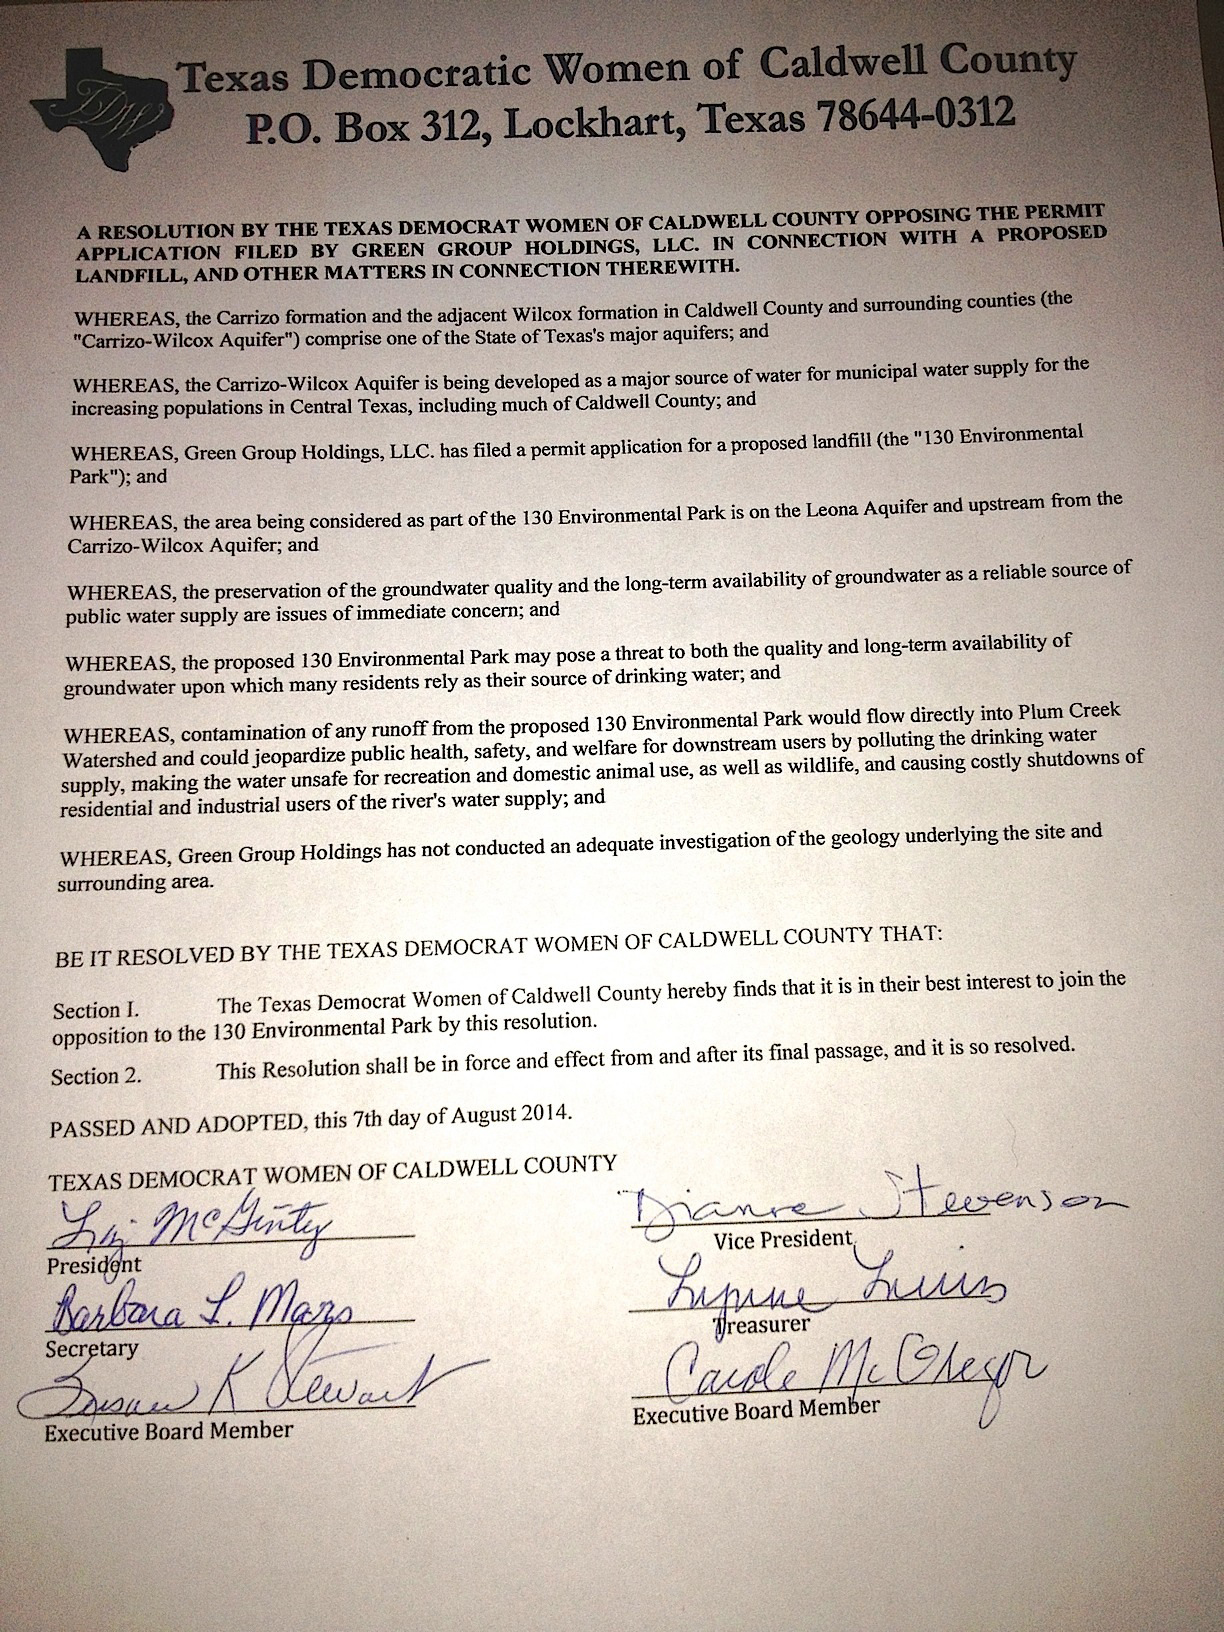 Caldwell County Democrats Adopt Resolution Opposing Proposed